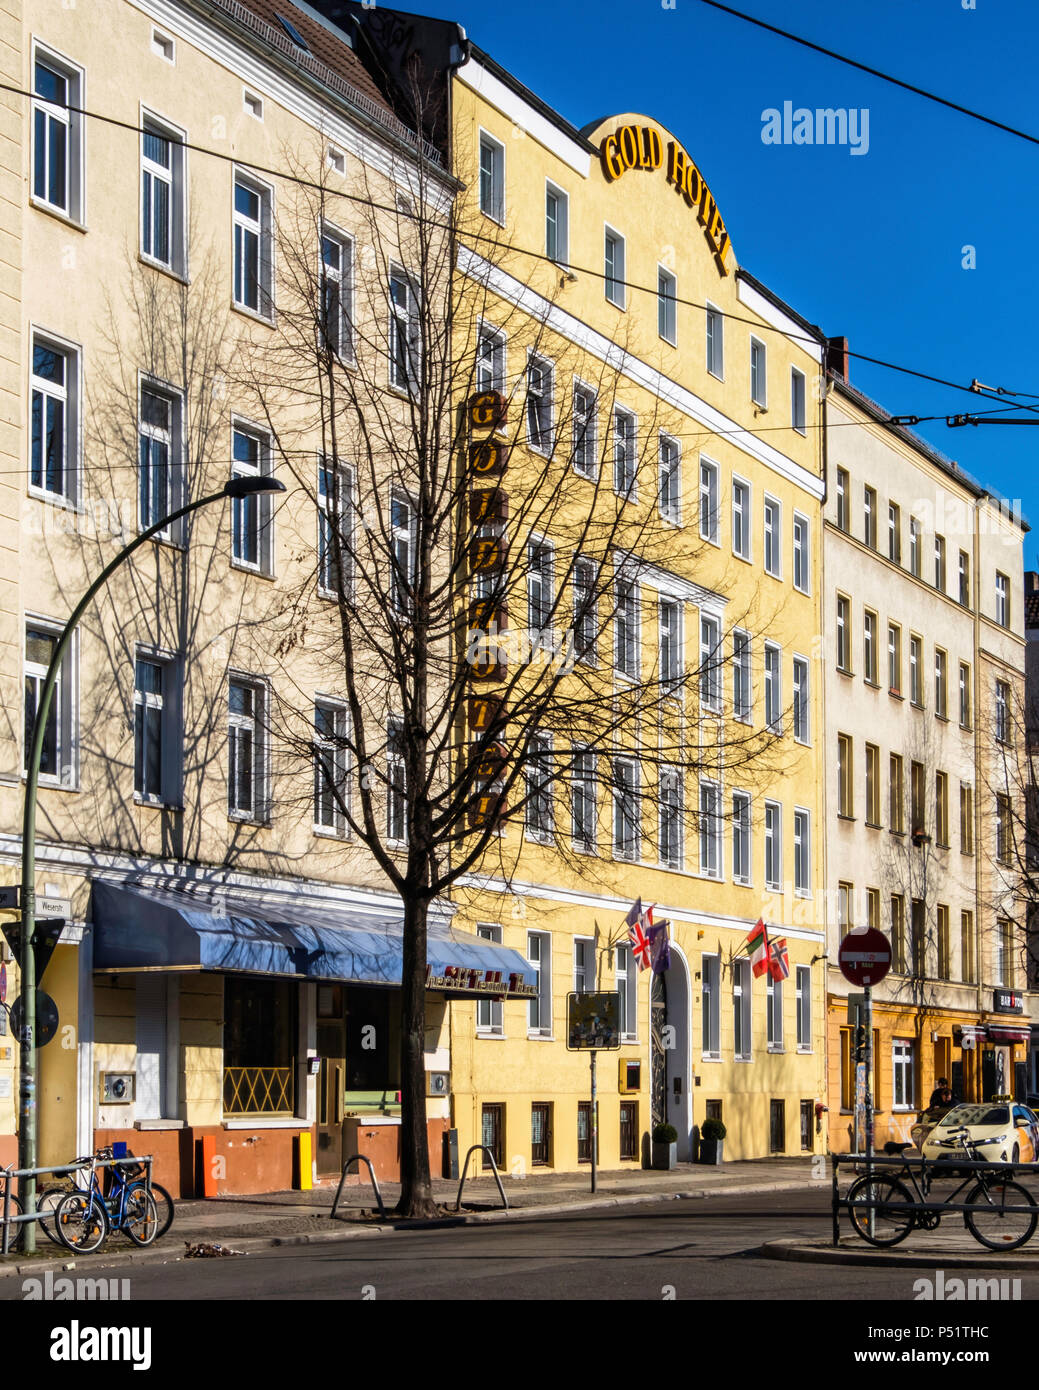 Berlin,Friedrichshain, Gold Hotel Building exterior. Accommodation for travellers - Stock Image